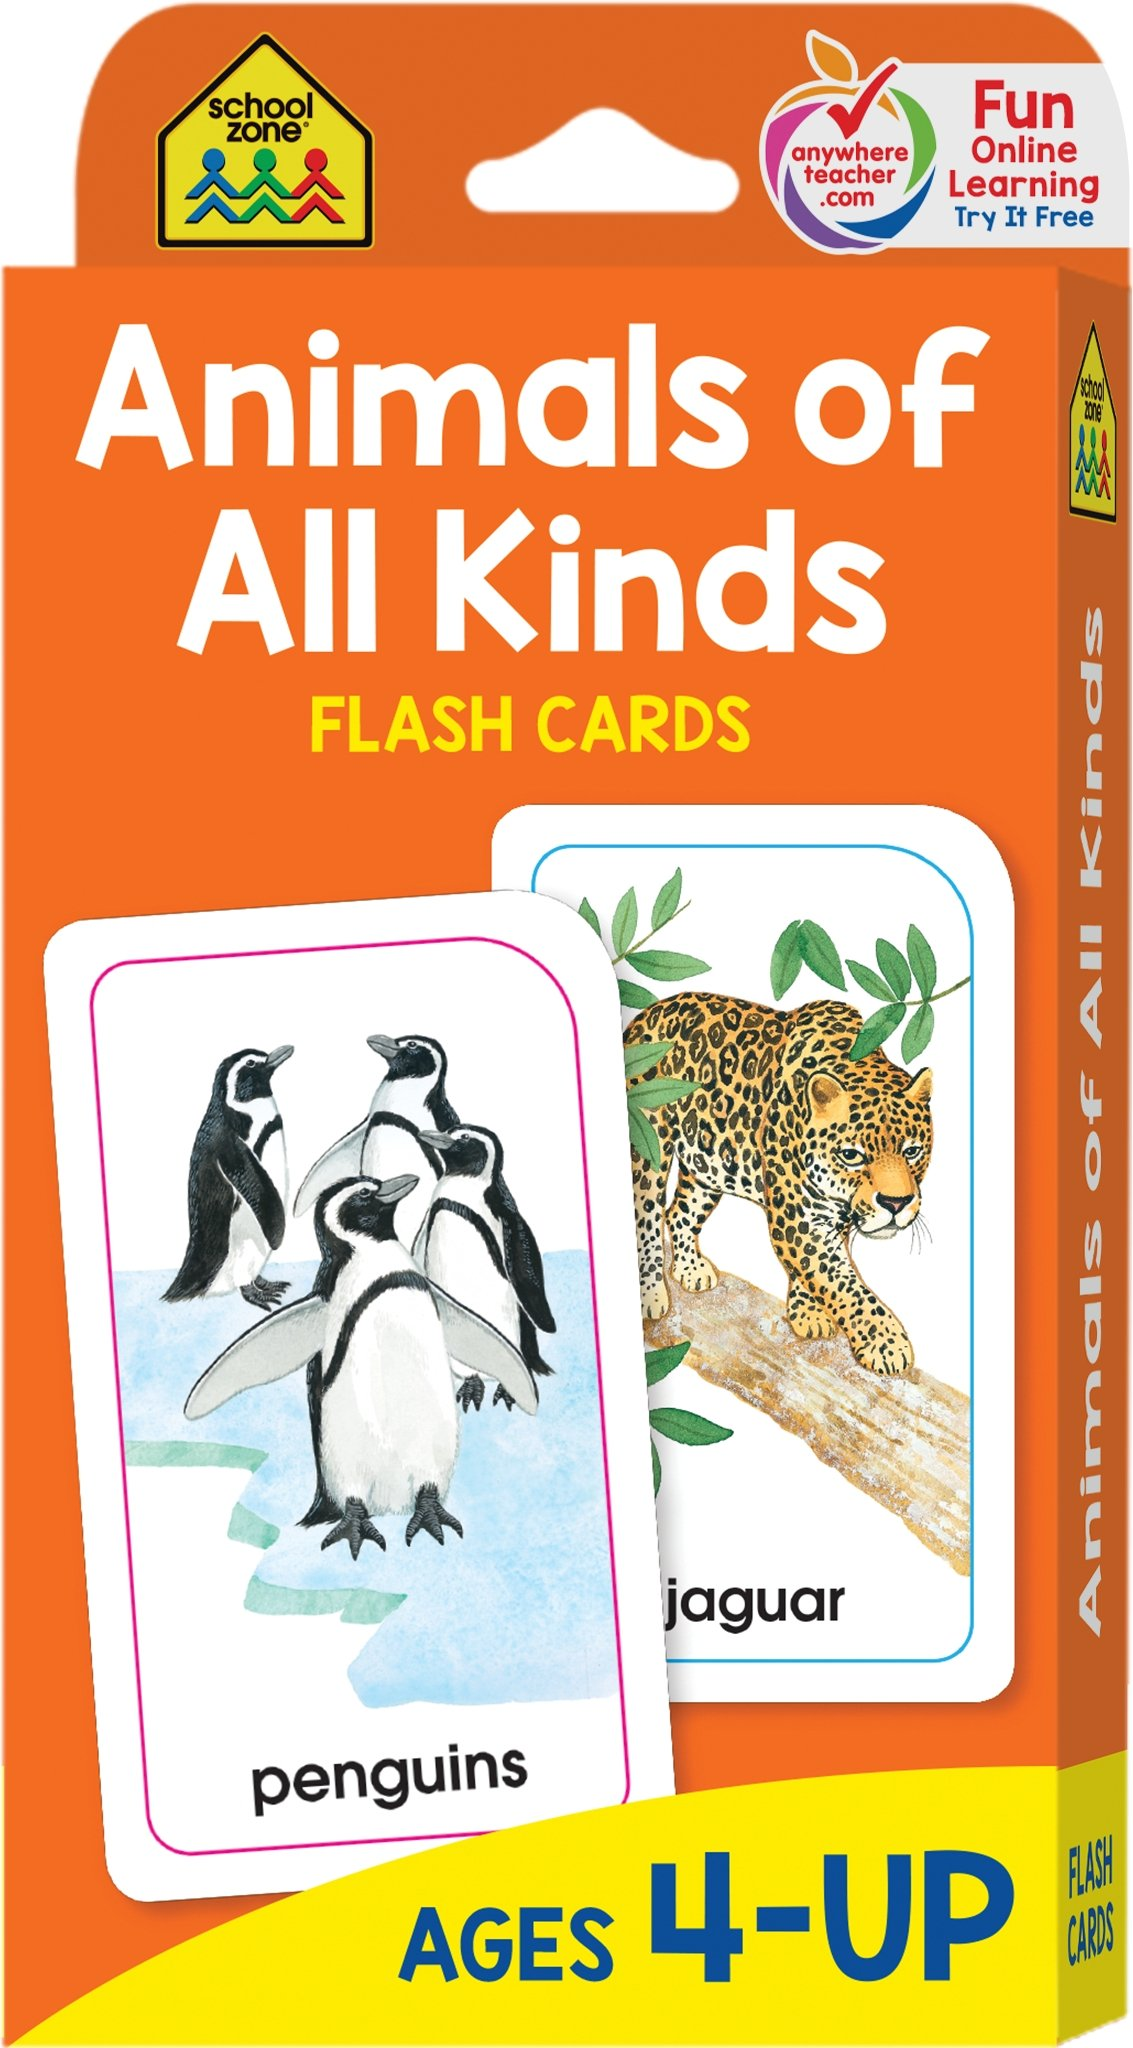 graphic about Zoo Animal Flash Cards Free Printable identify University Zone - Pets of All Styles Flash Playing cards - Ages 4 and